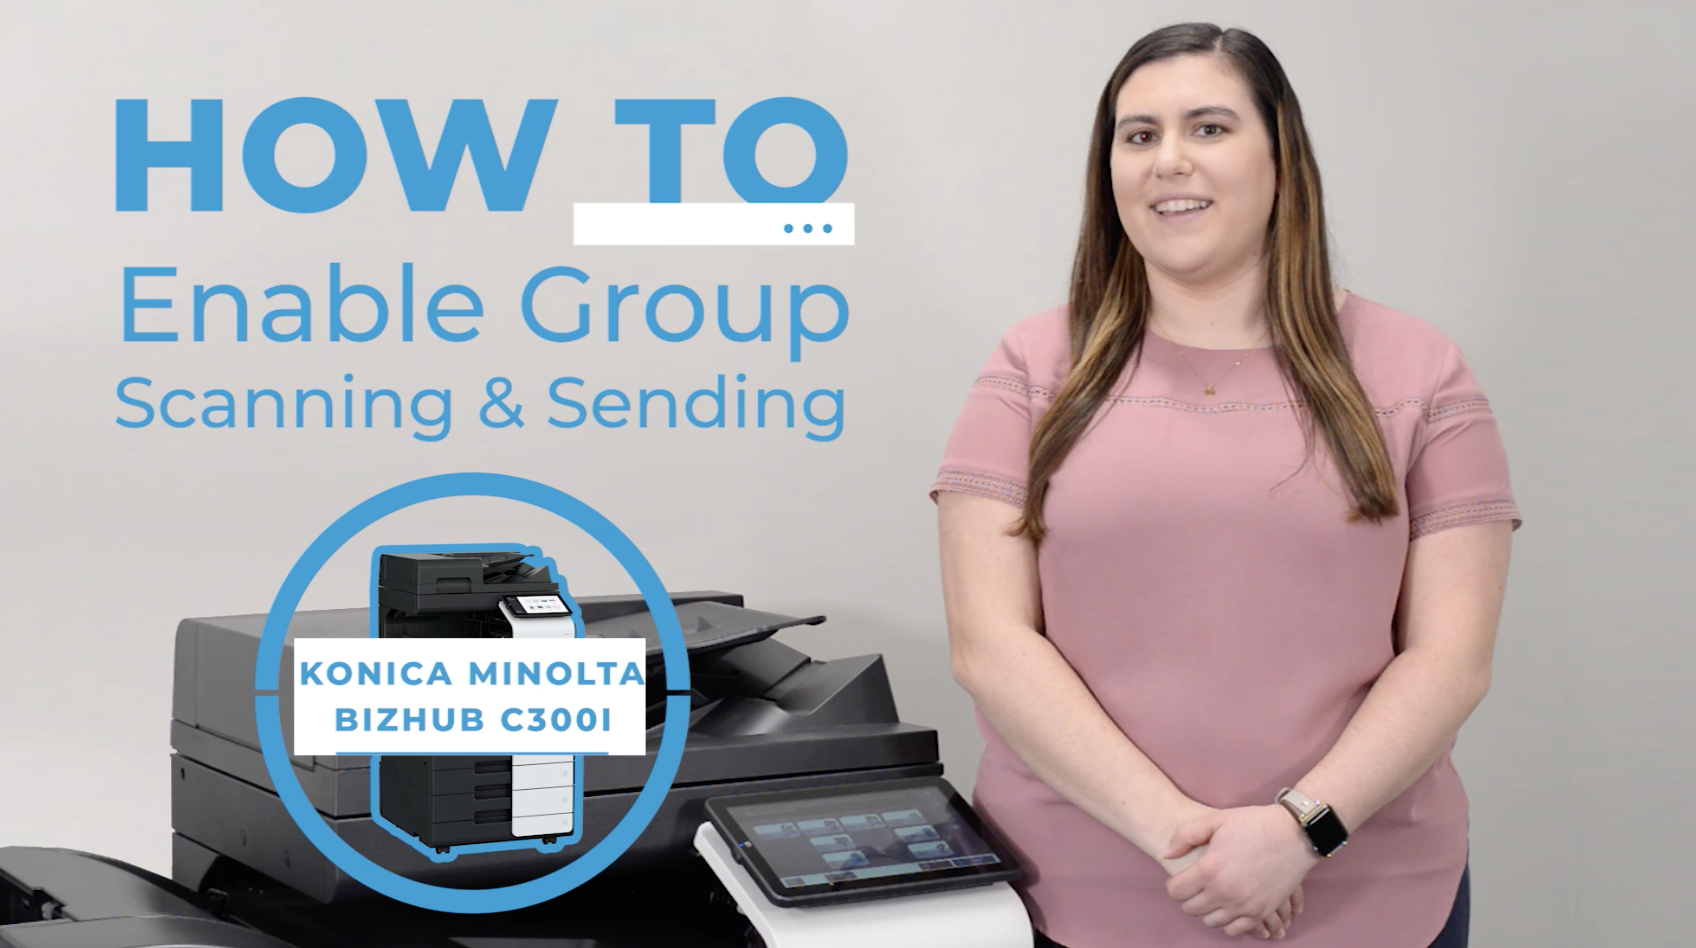 How to Enable Group Scanning and Sending